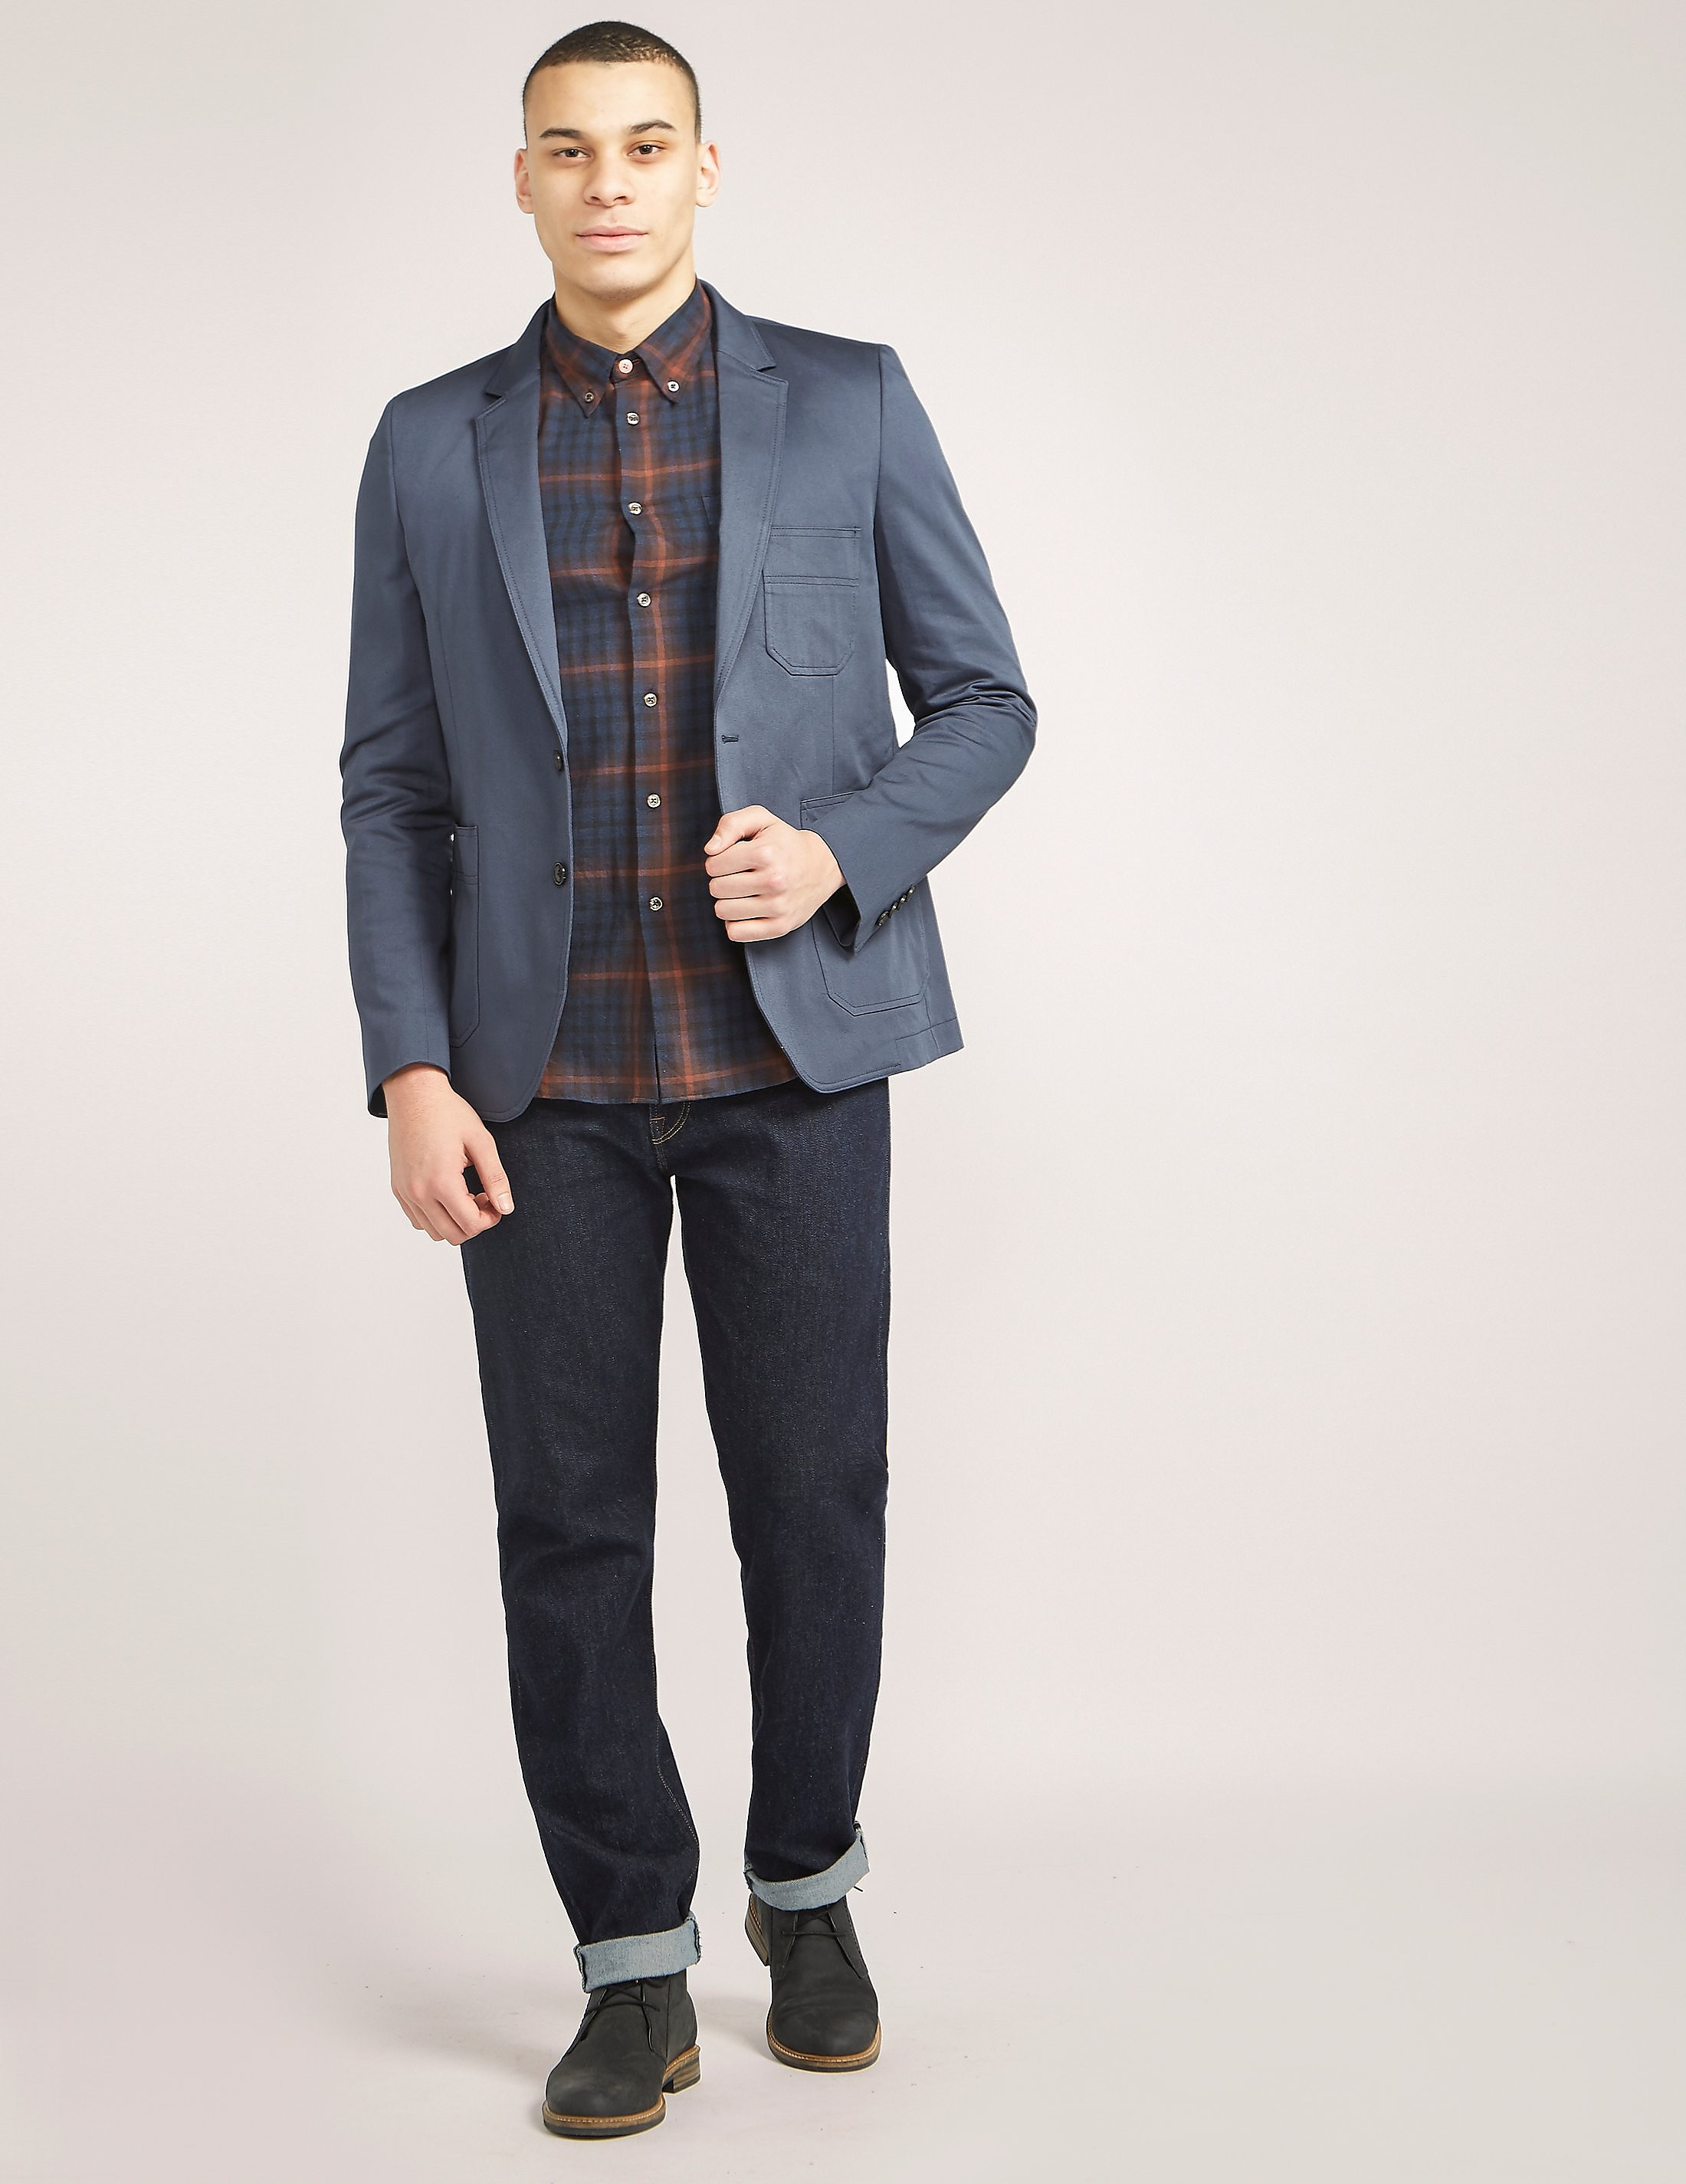 Paul Smith Patch Pocket Blazer